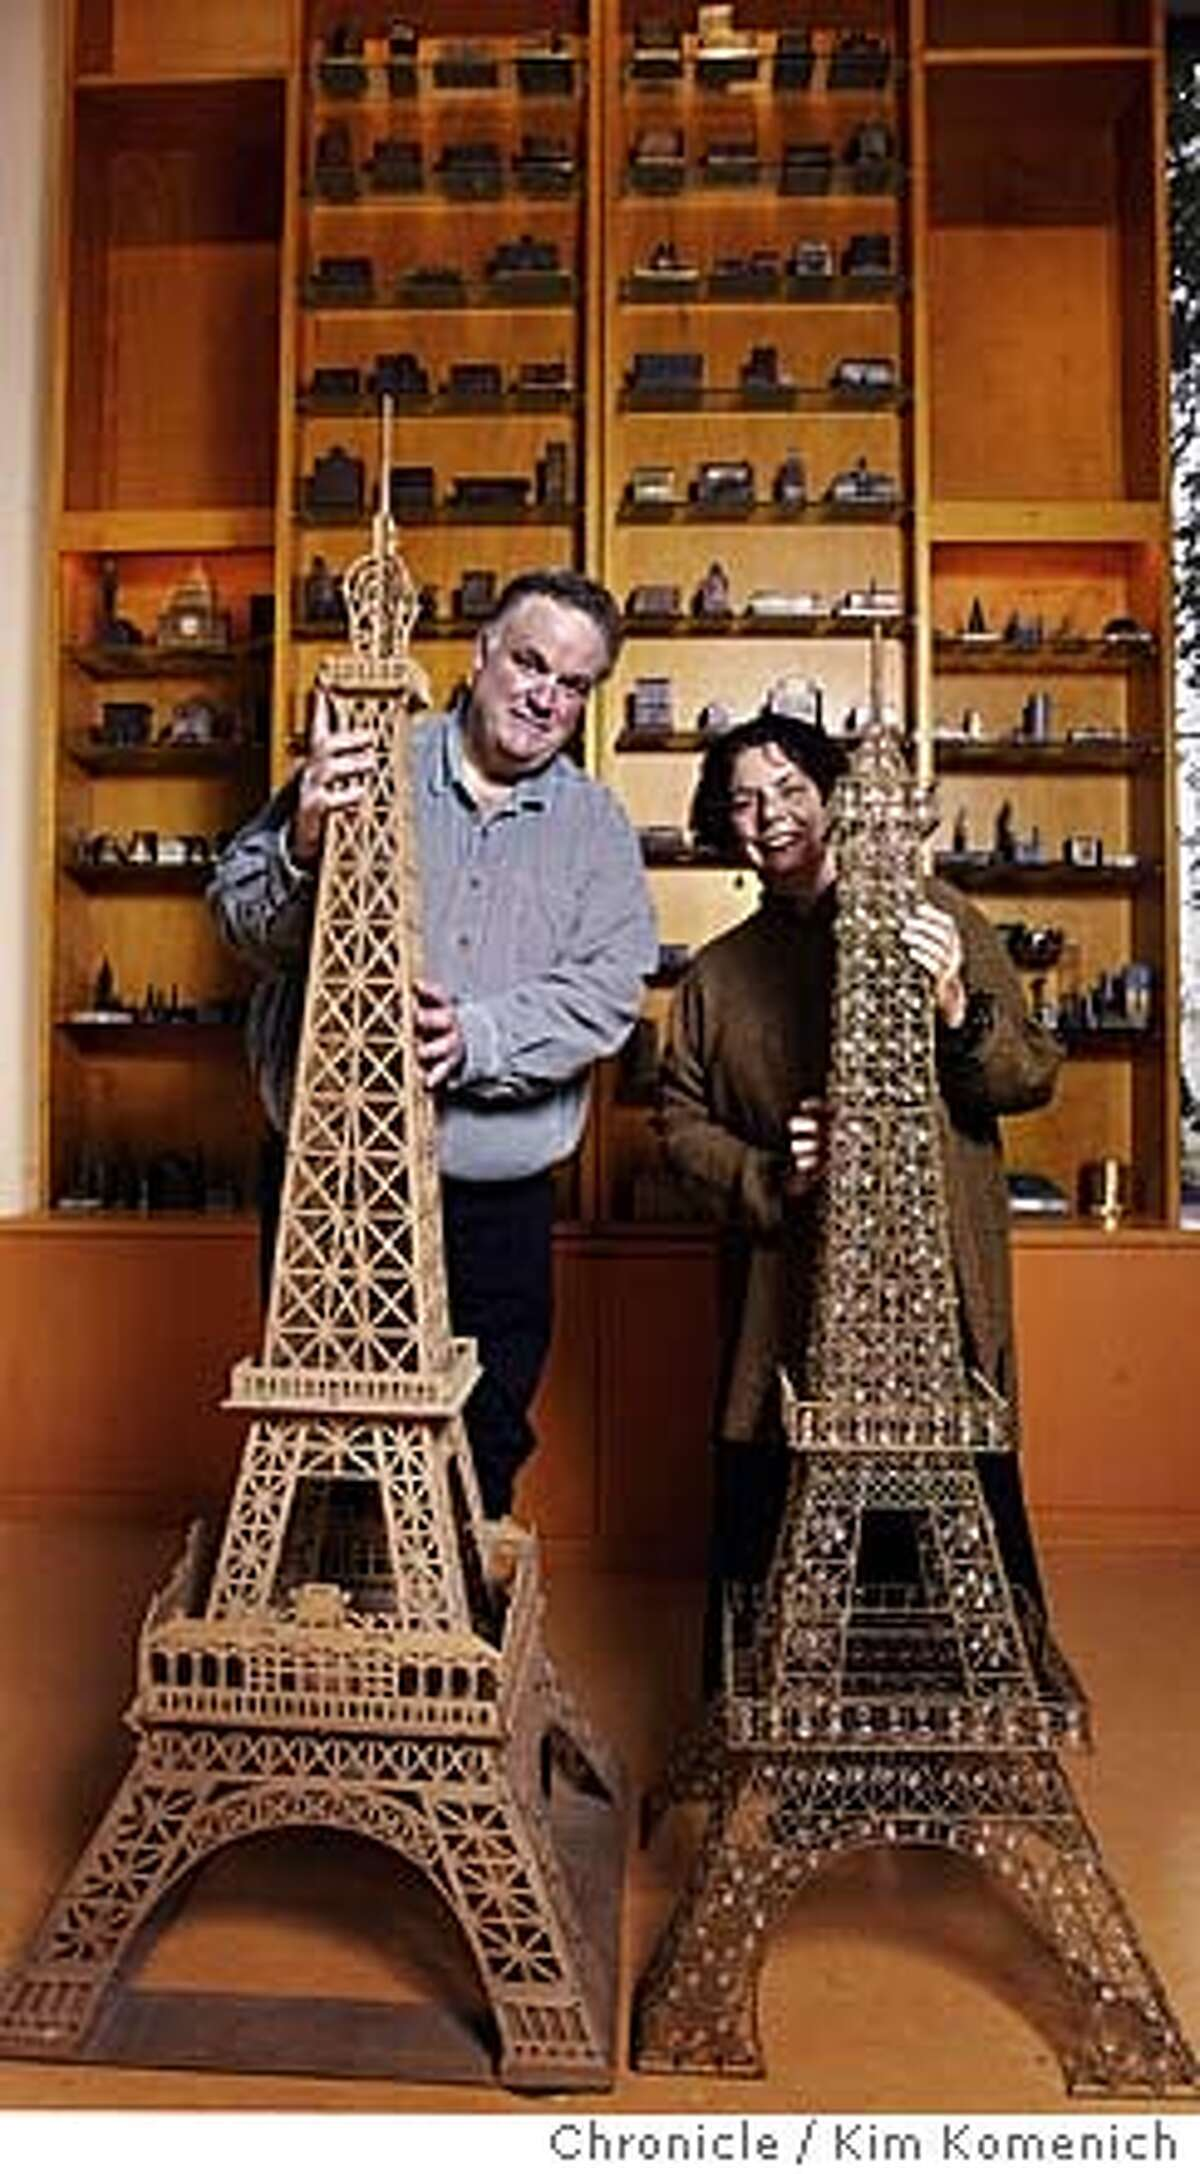 For the past 18 years David Weingarten (L) and Margaret Majua (R) of Lafayette collect miniature renditions of recognizable buildings from around the world. They have dedicated a room in their home to their collection including these whopping Eiffel towers. Photo by Kim Komenich in Lafayette.